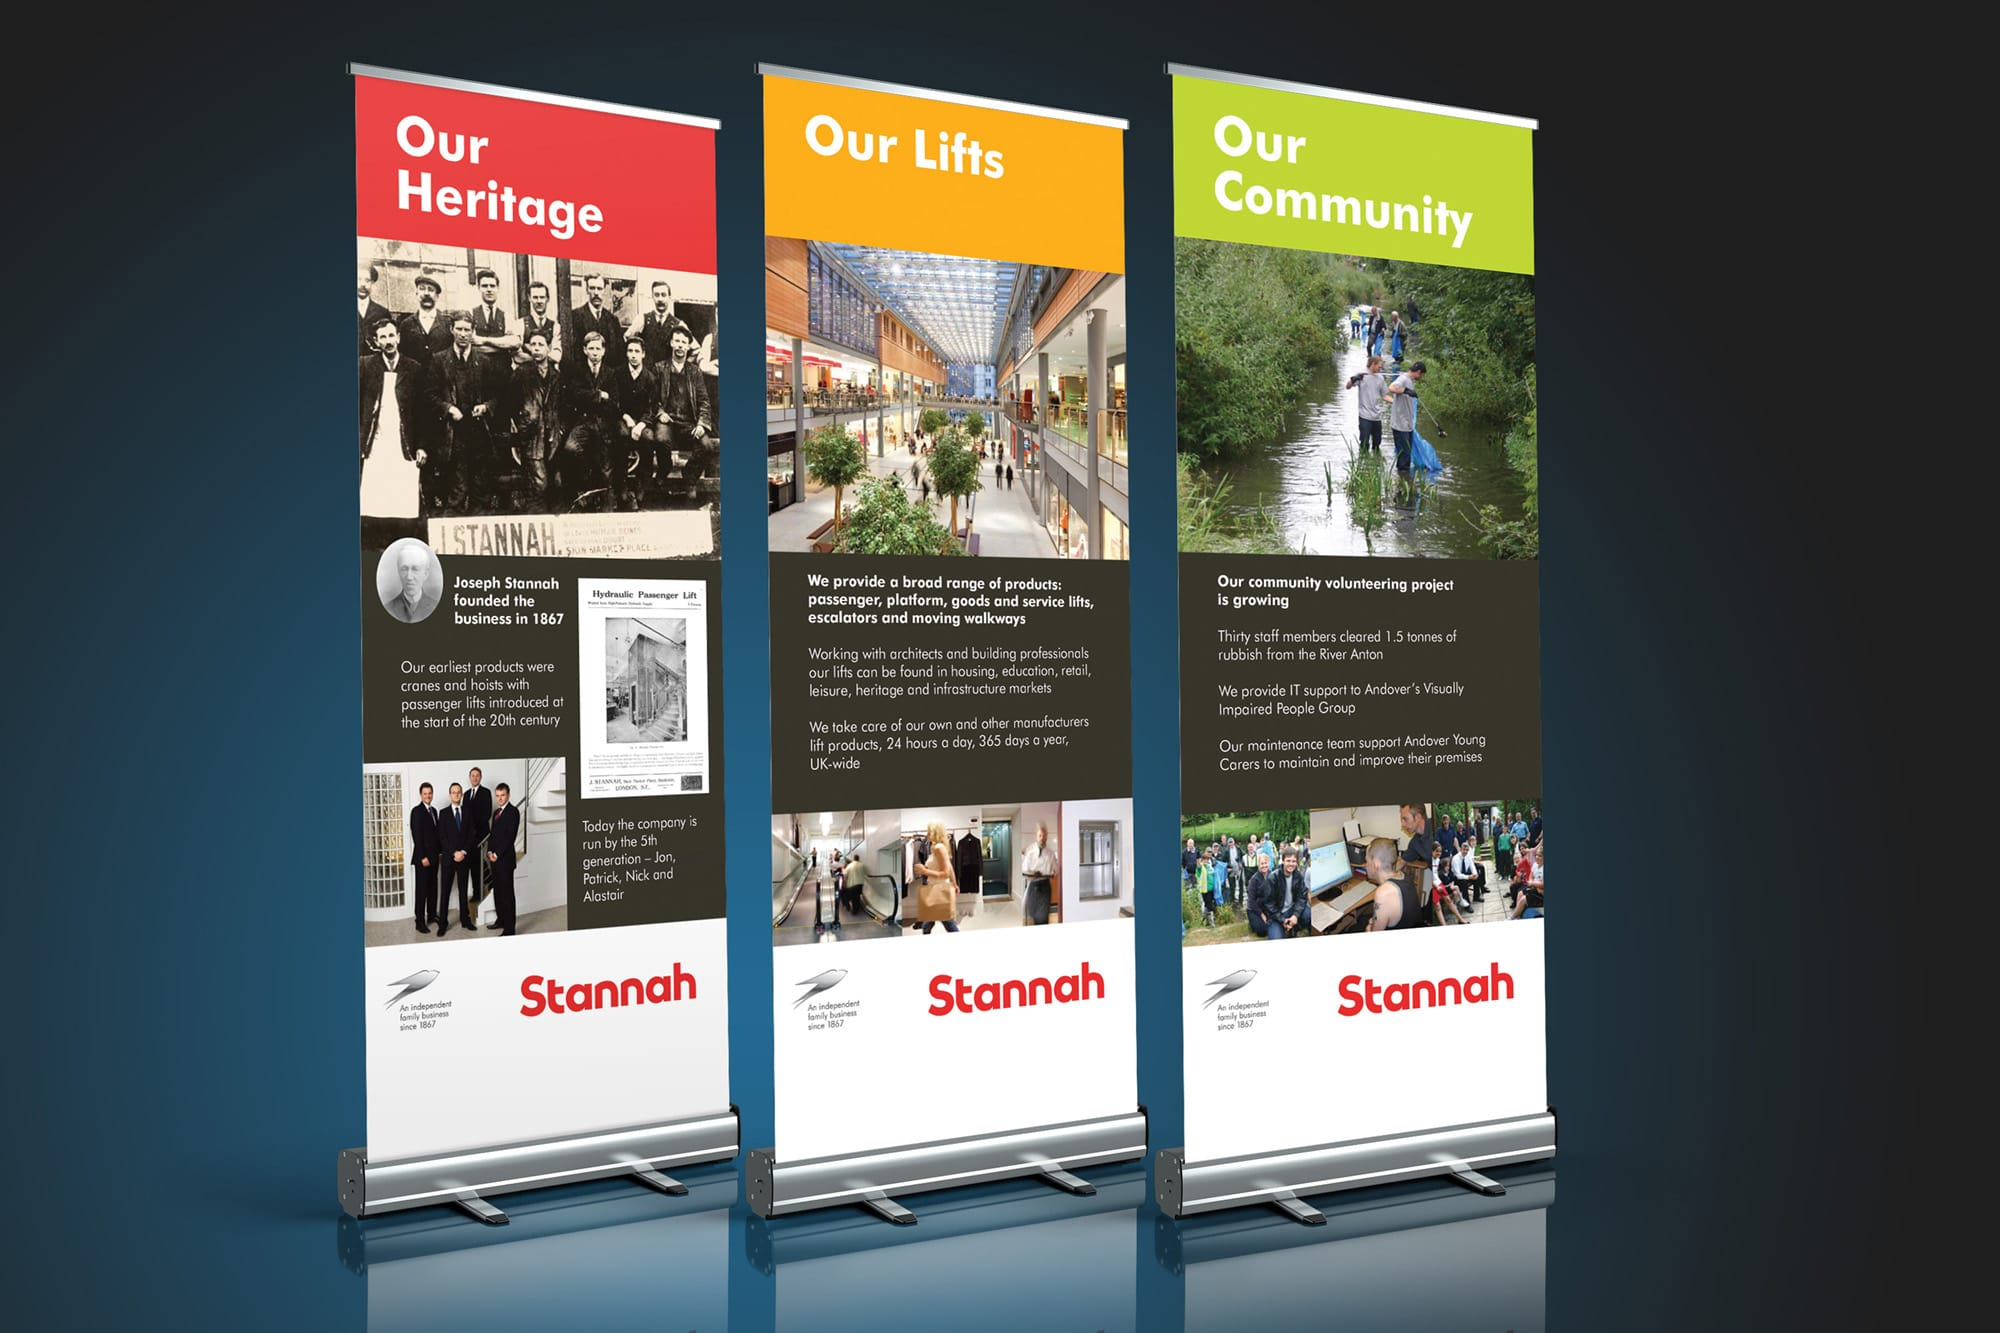 stannah-roller-banners-mockup